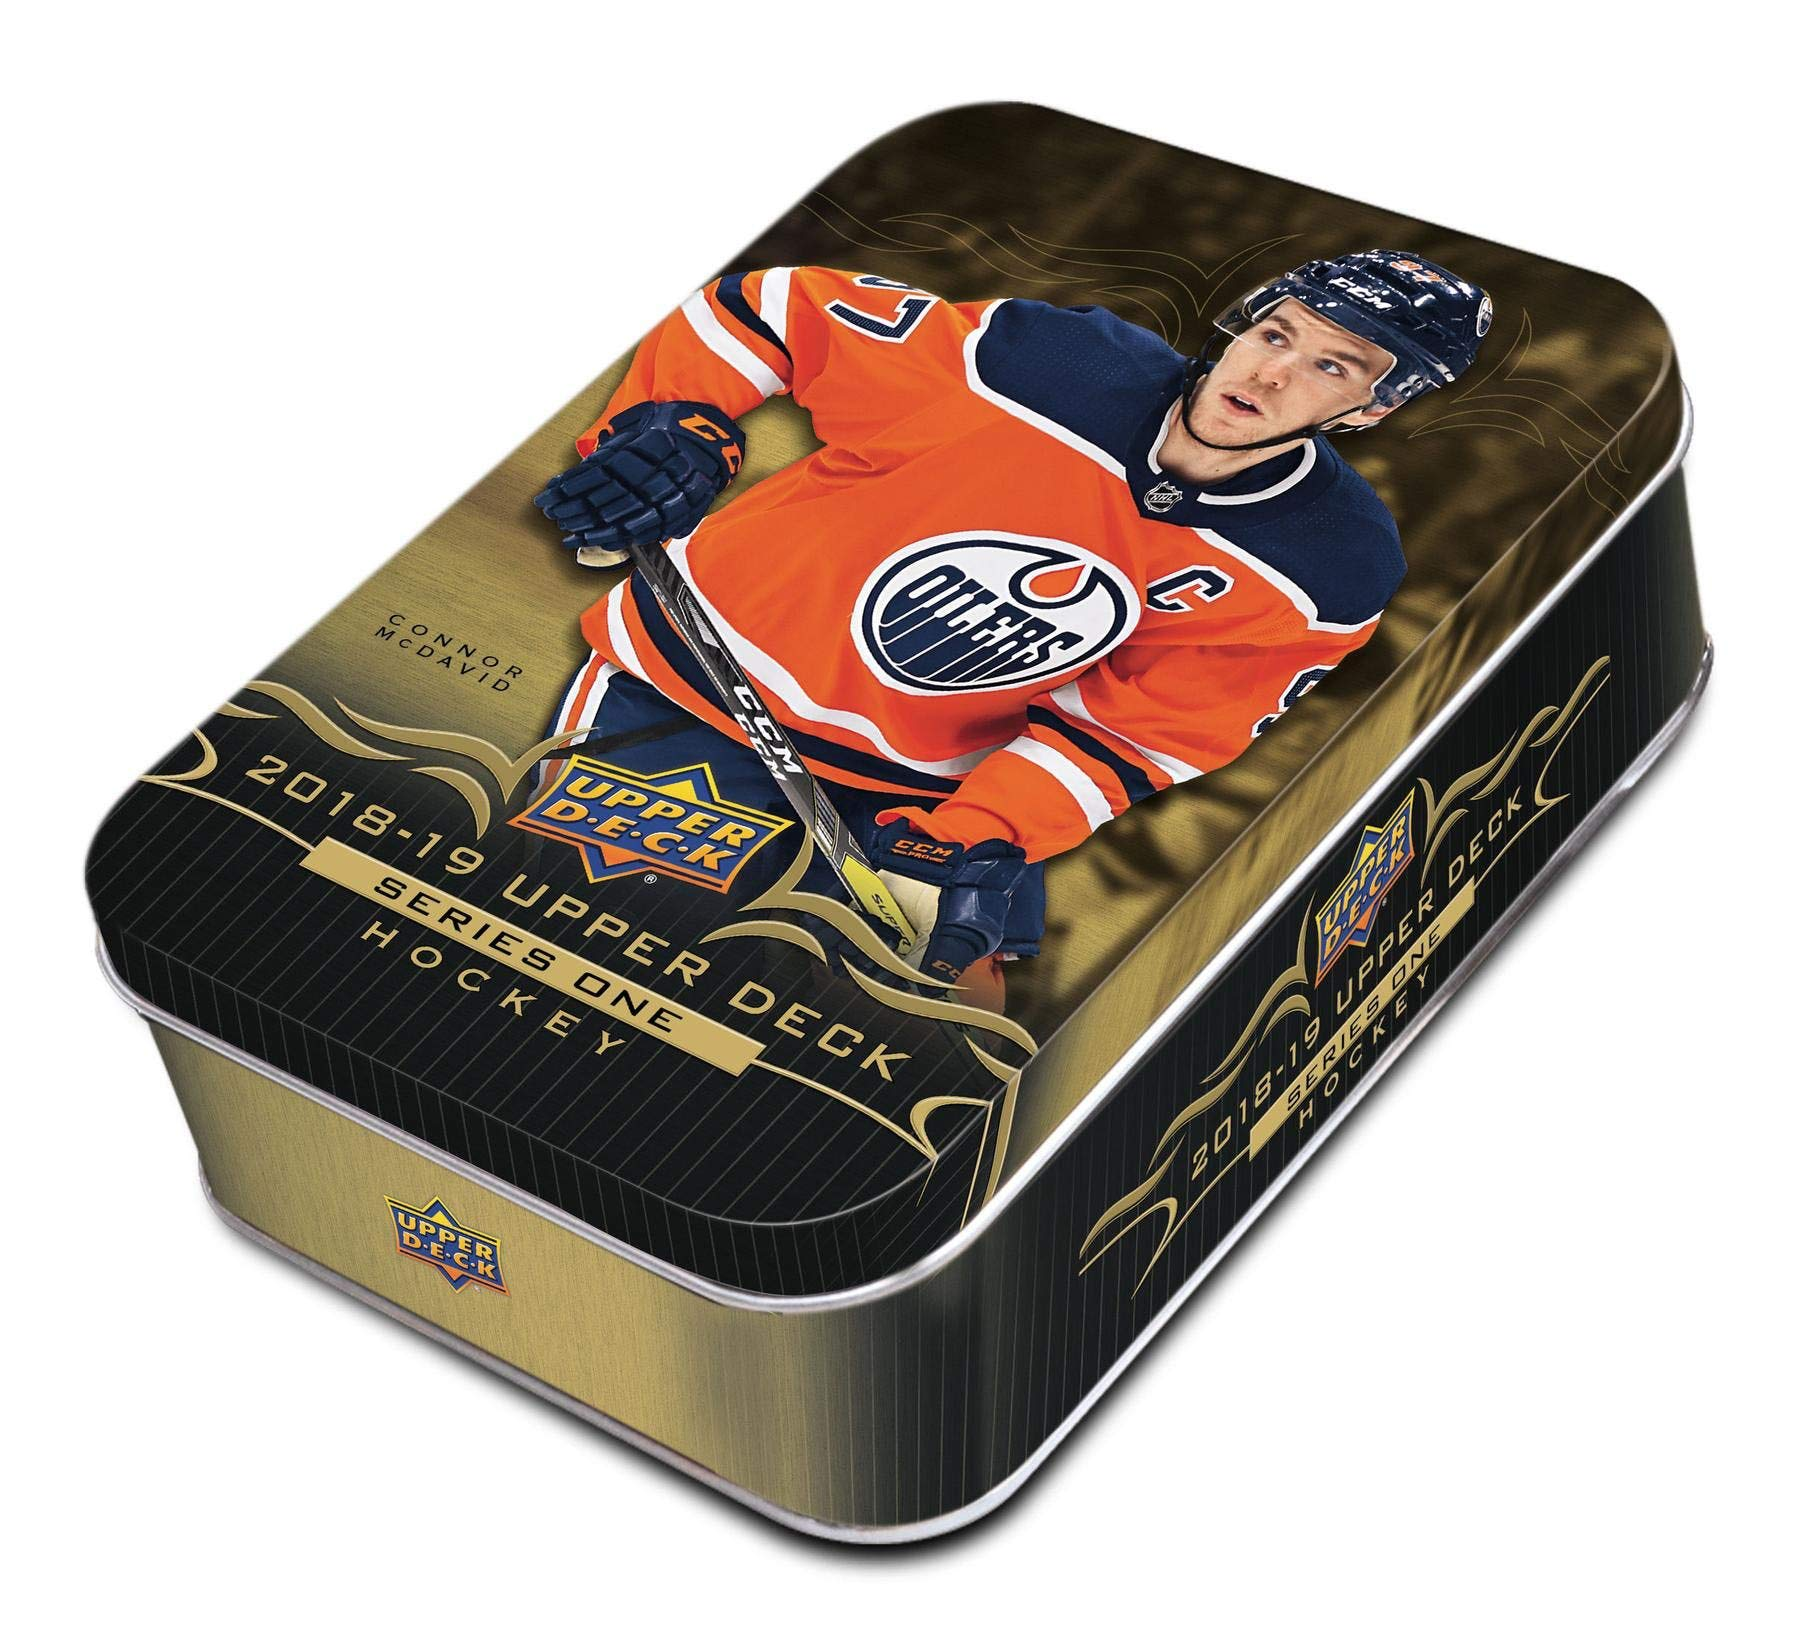 2018/19 Upper Deck 1 NHL Hockey TIN box (12 pk)